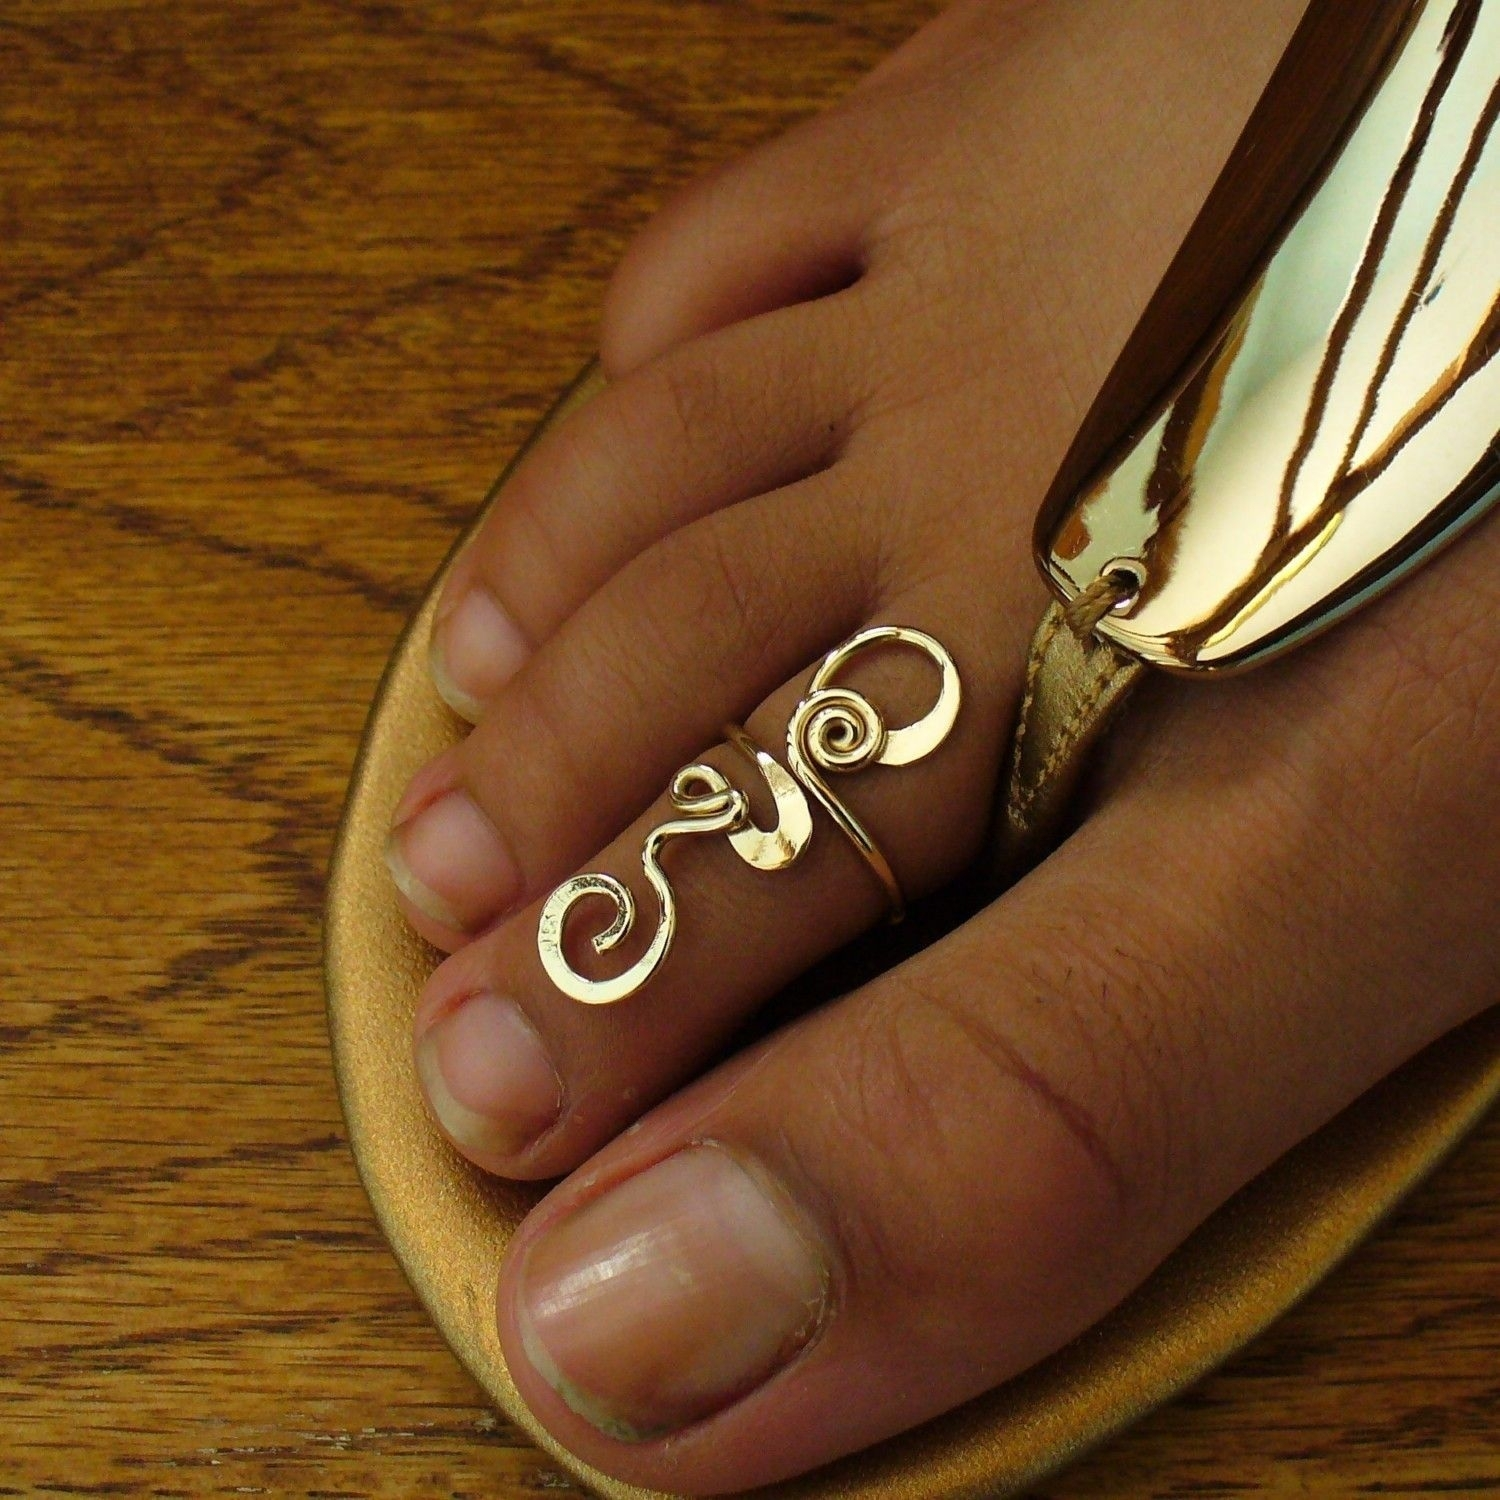 12K Gold Filled Gold Toe Ring Long Toes Ring Gold Midi Ring Gold Regarding Recent Toe Rings In Gold (View 1 of 15)